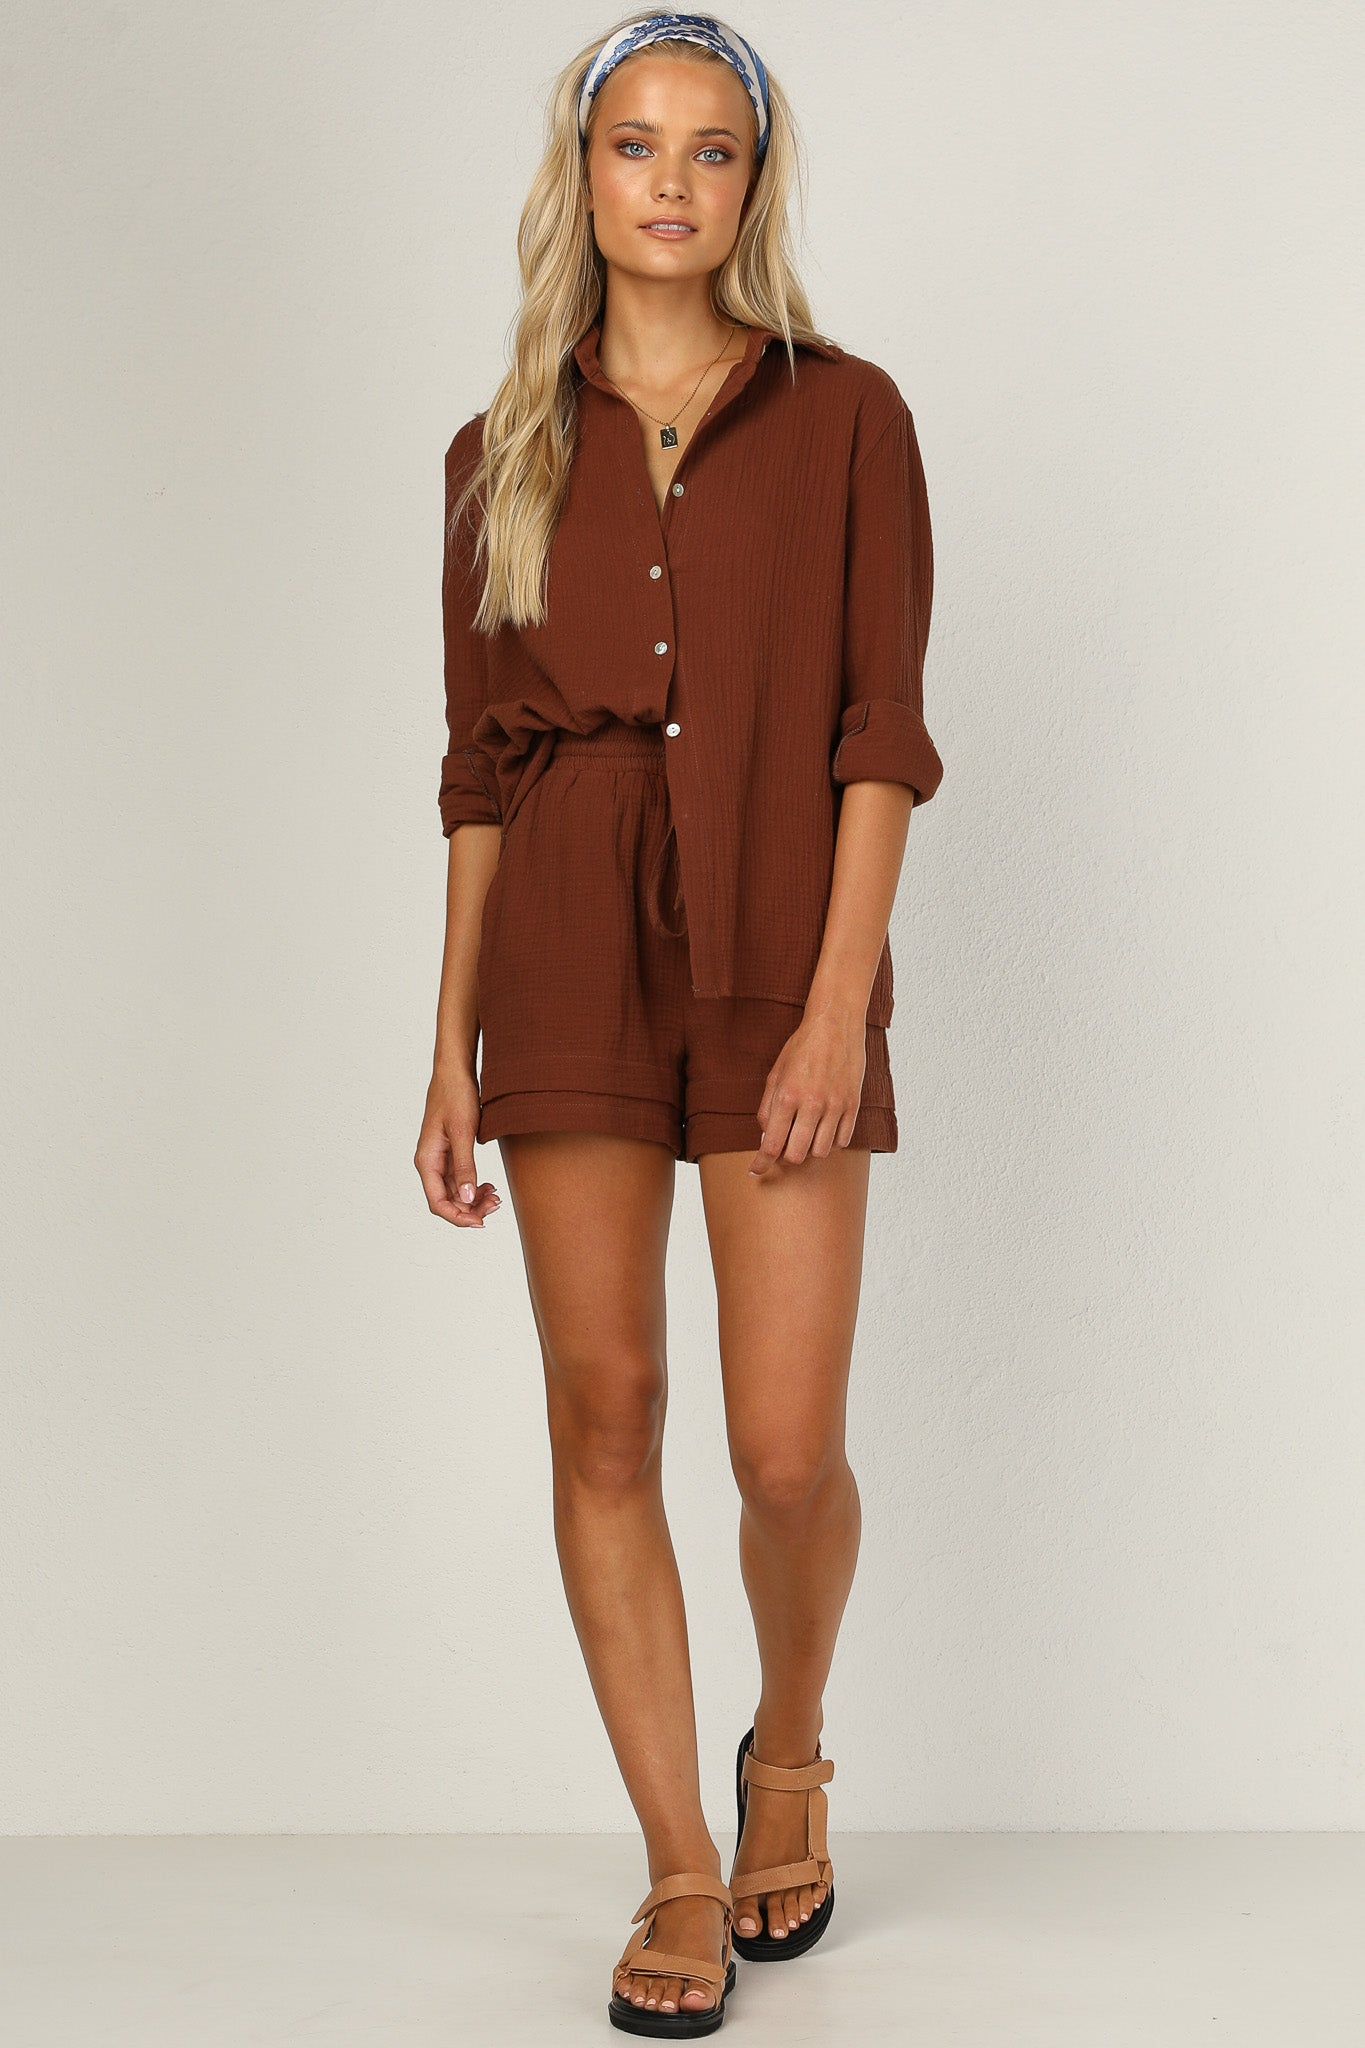 Cool Breeze Top (Chocolate)